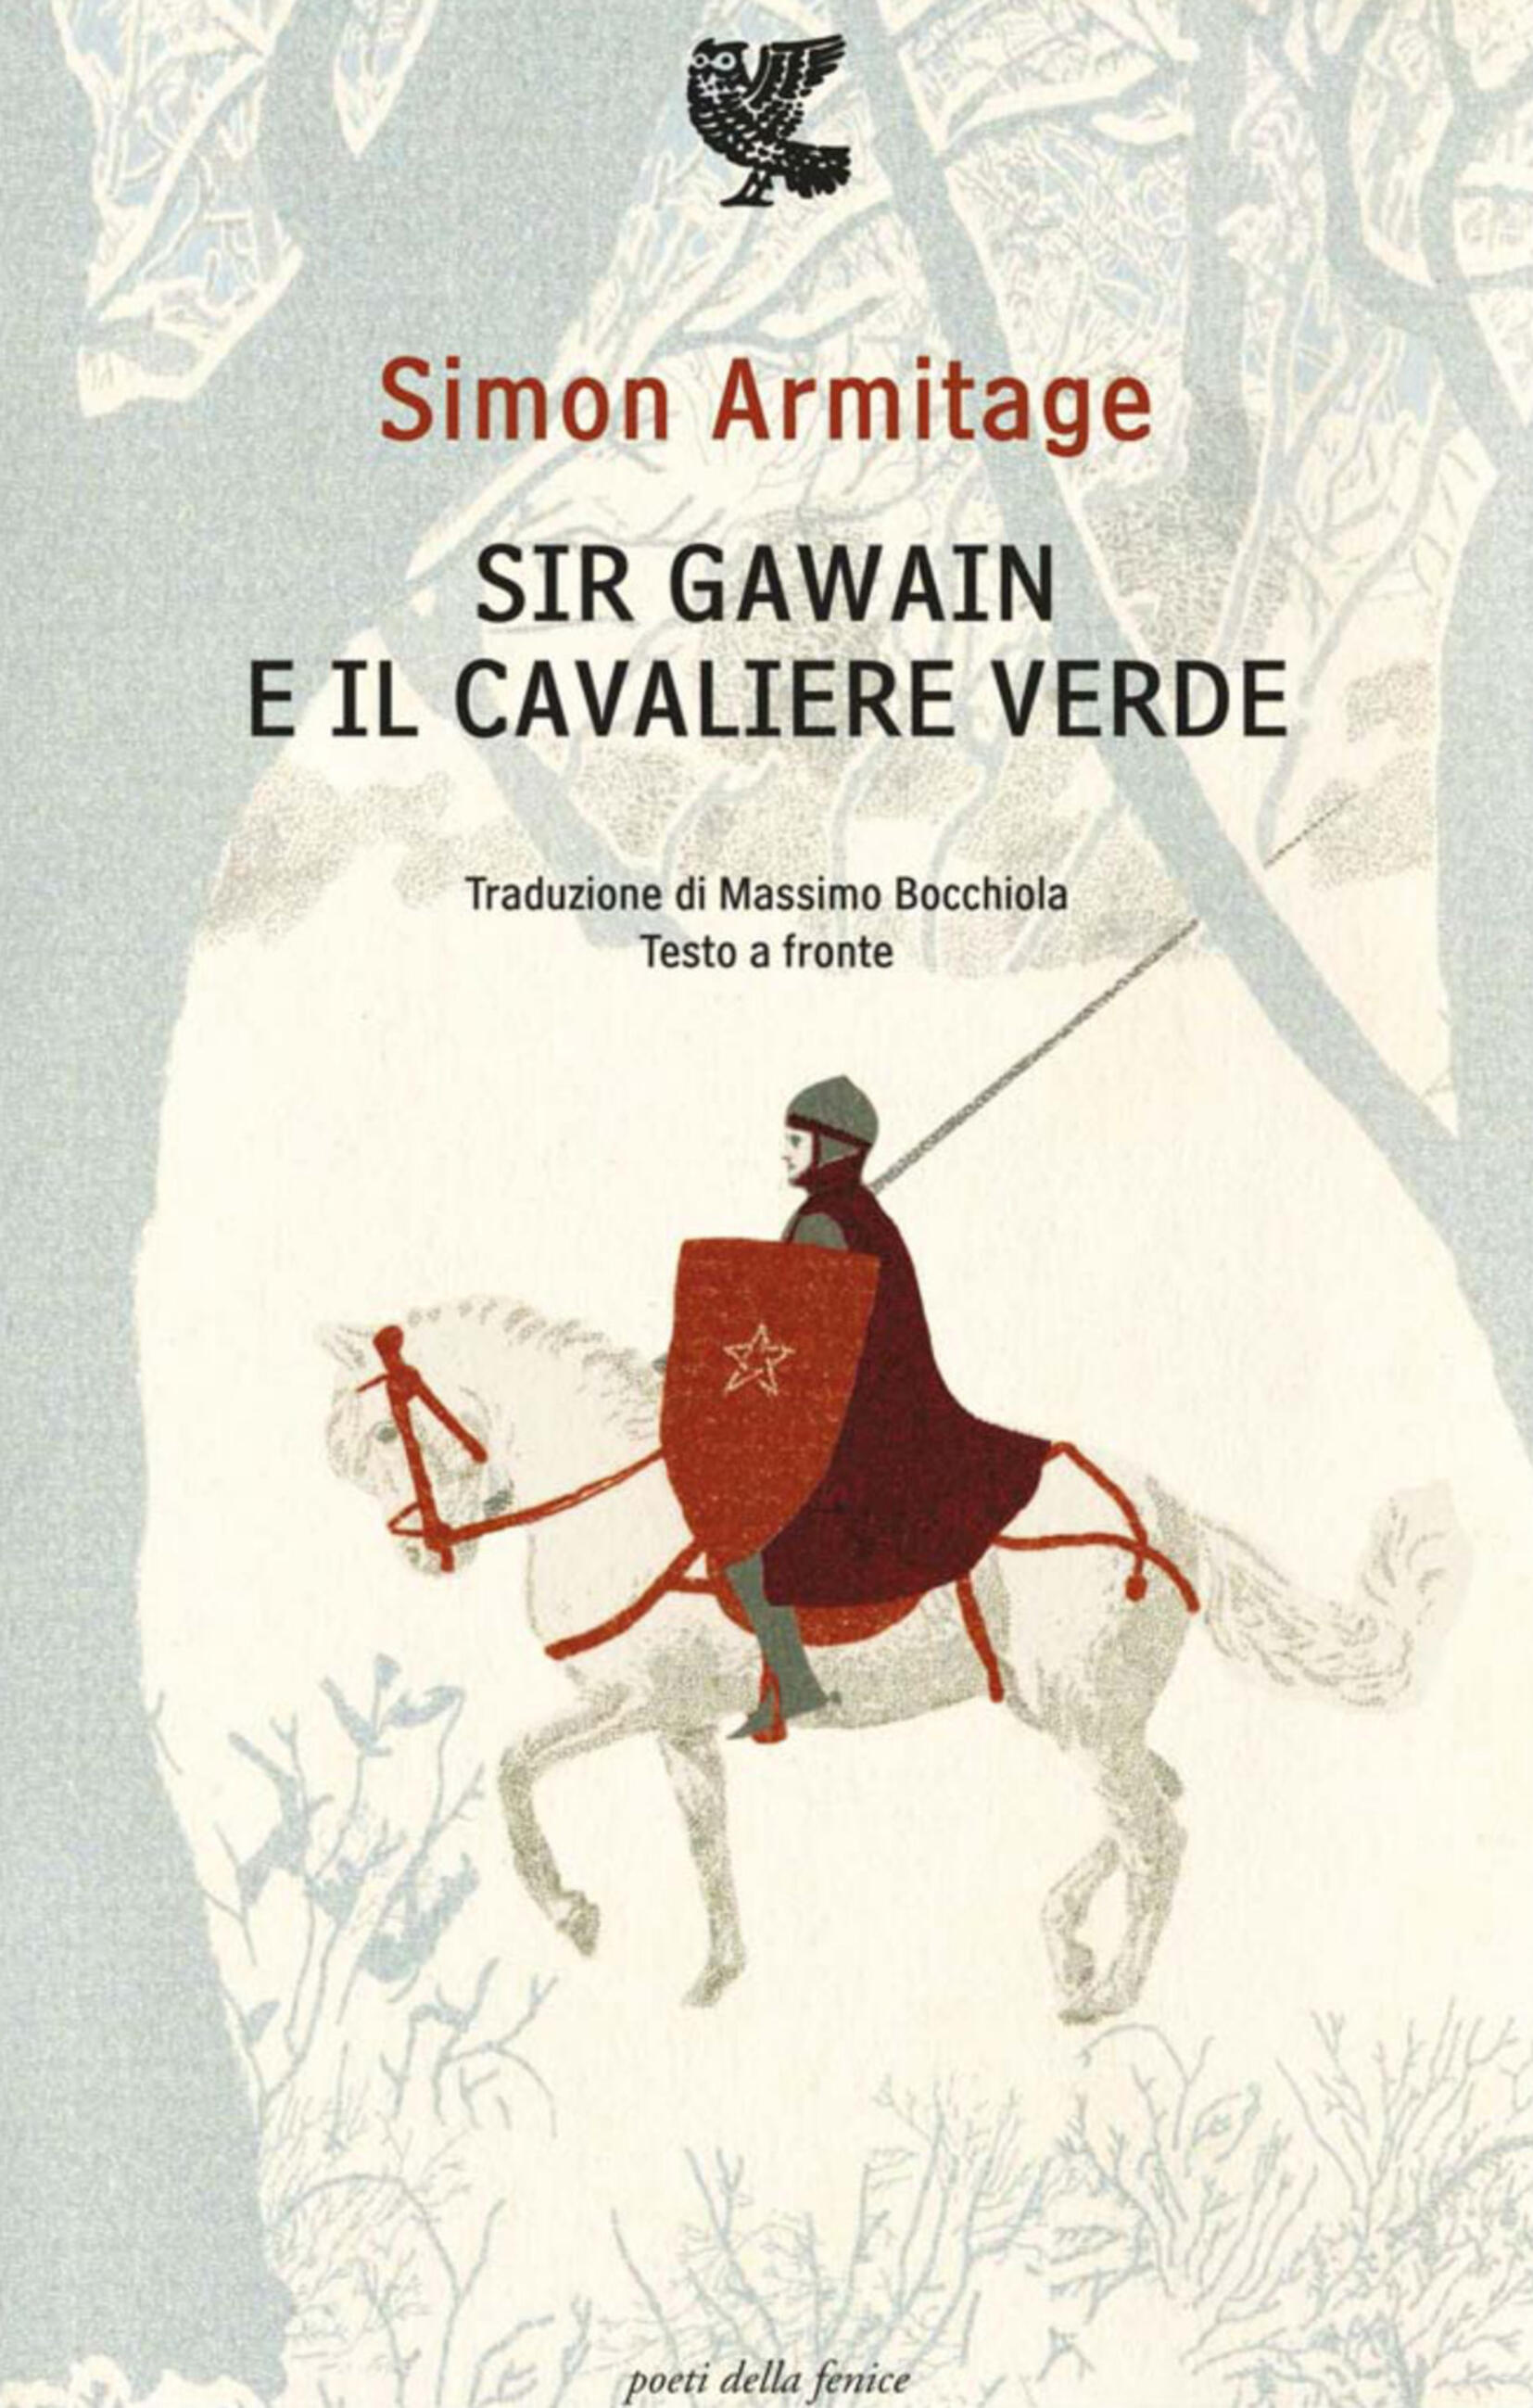 Sir gawain e il cavaliere verde testo inglese a fronte armitage sir gawain e il cavaliere verde testo inglese a fronte armitage simon ebook pdf con drm ibs fandeluxe Images